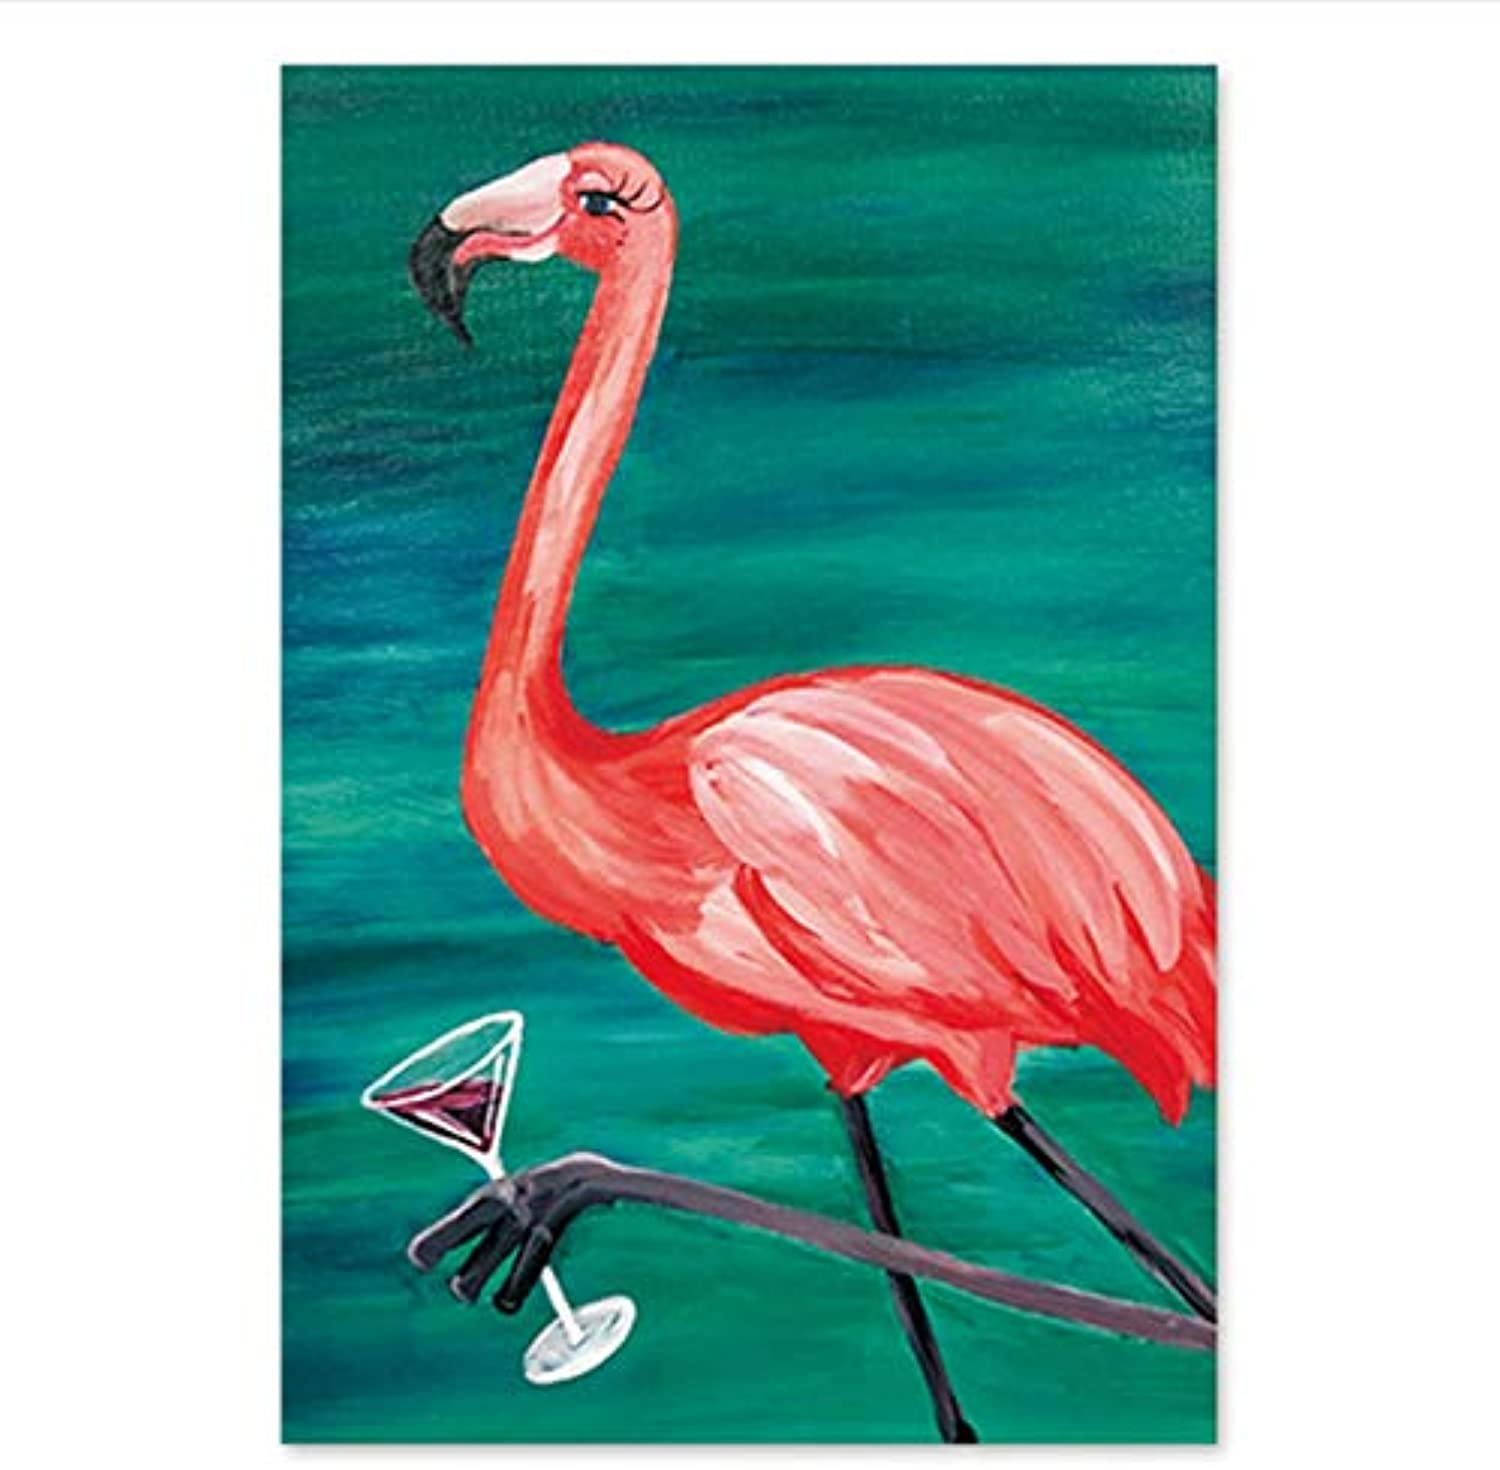 CAYYOU DIY Digital painting of flamingo with animal figures painting digital painting with his hand painting still living, Framed, 50x60cm